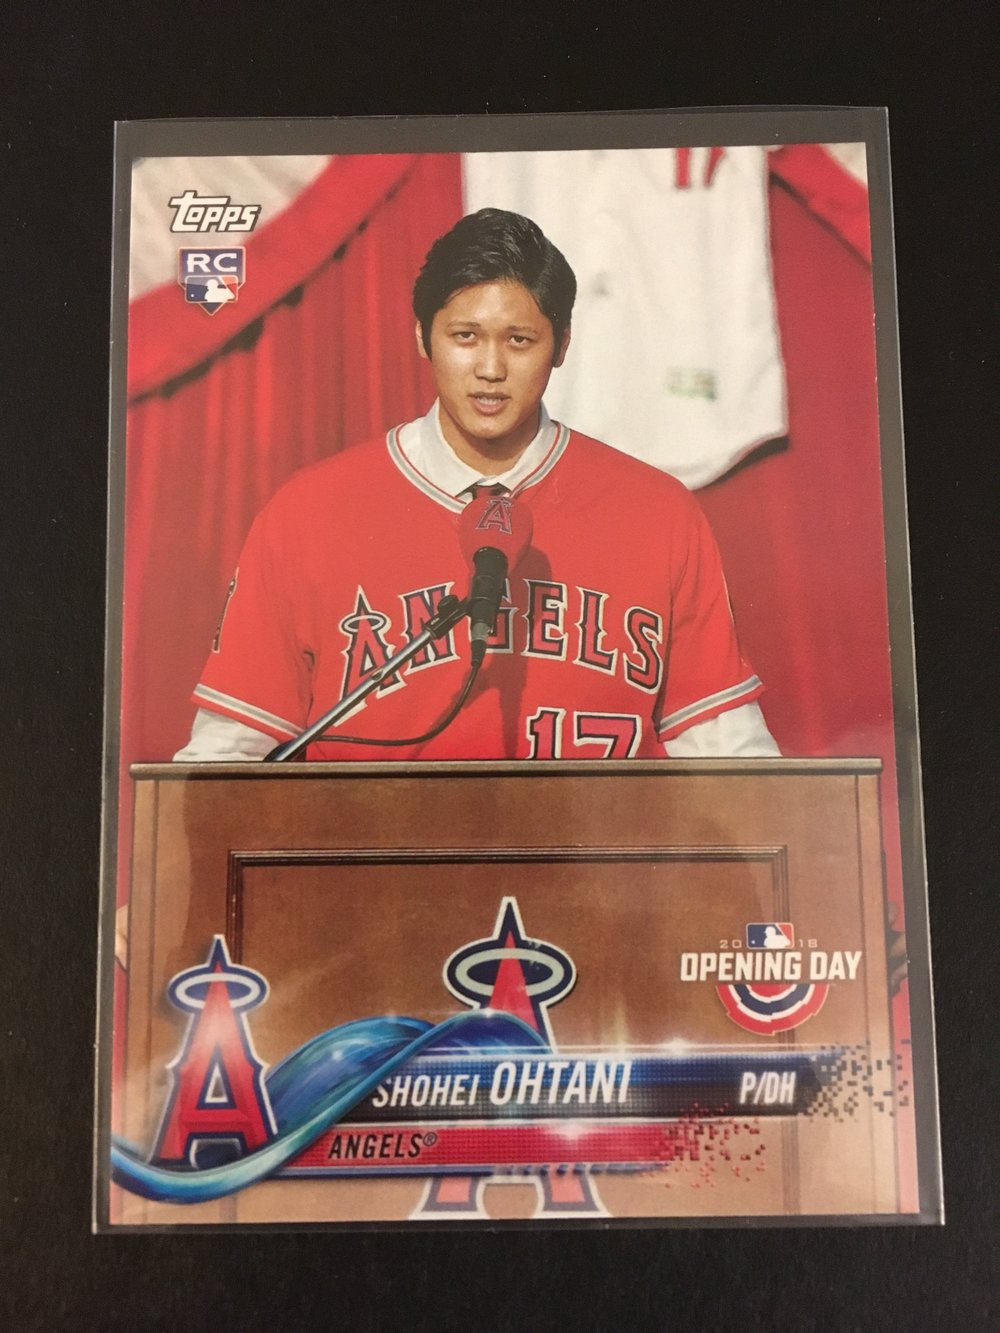 Here's Ohtani...